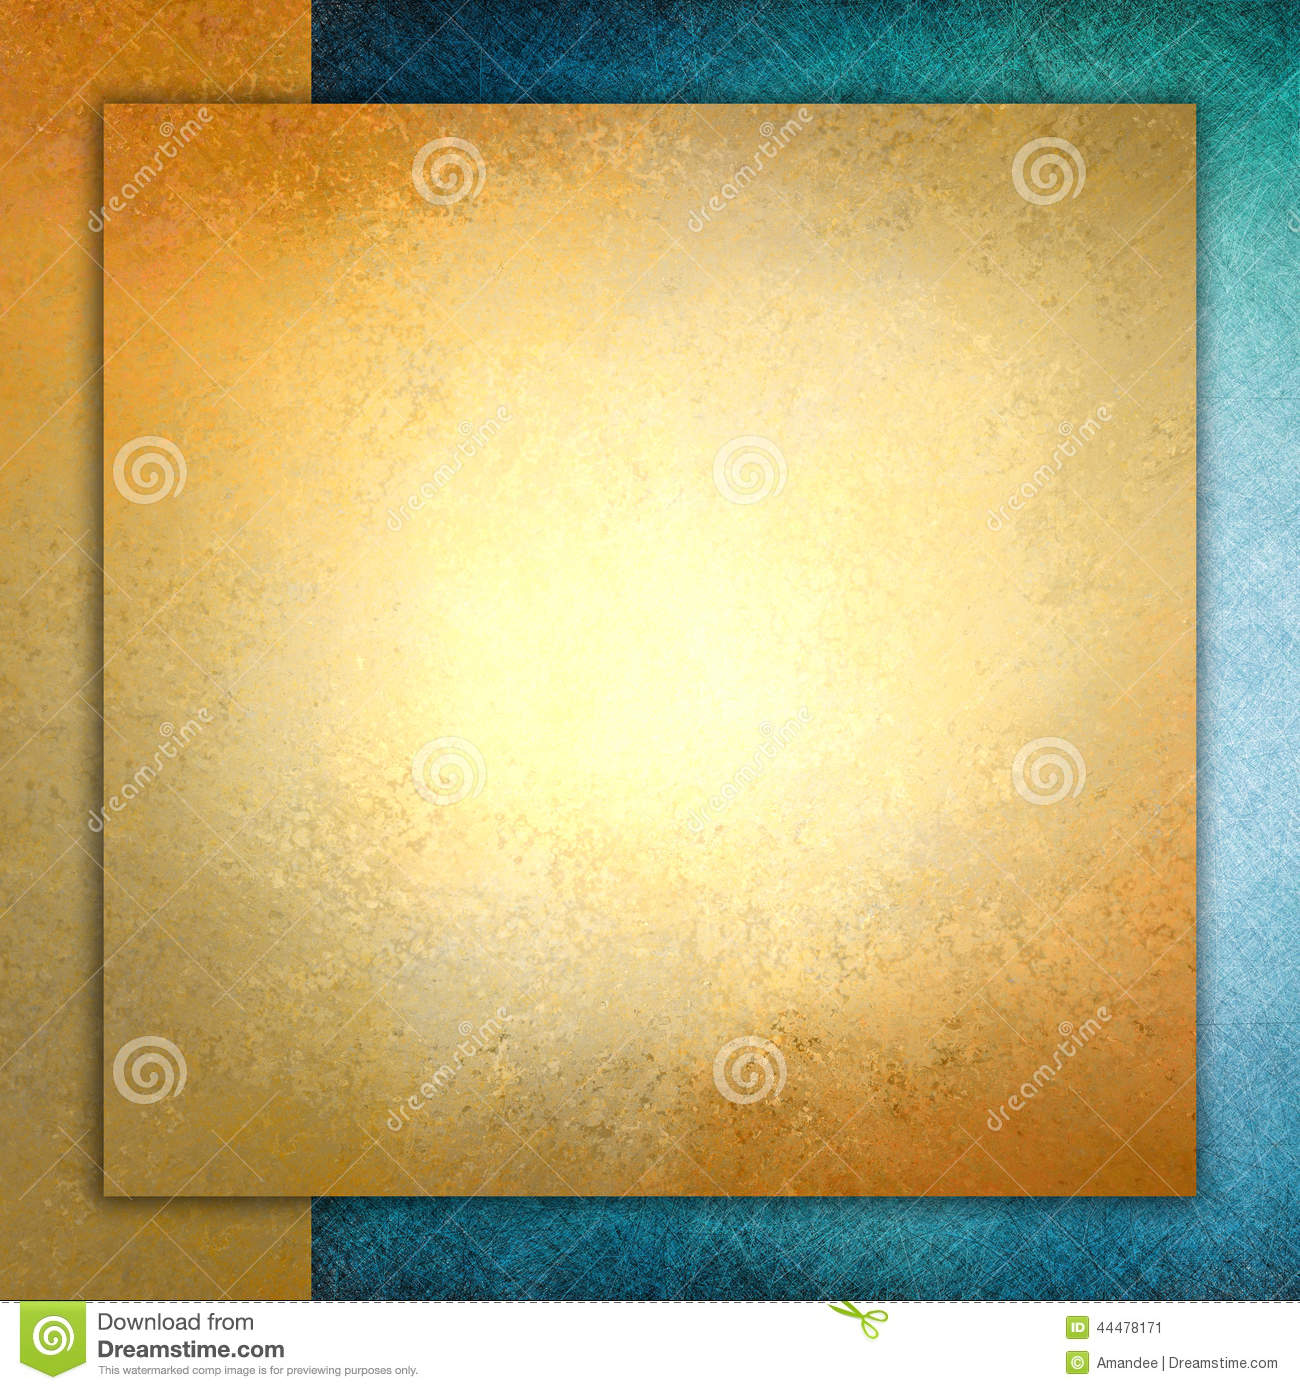 solid gold paper layered on blue and gold background square gold